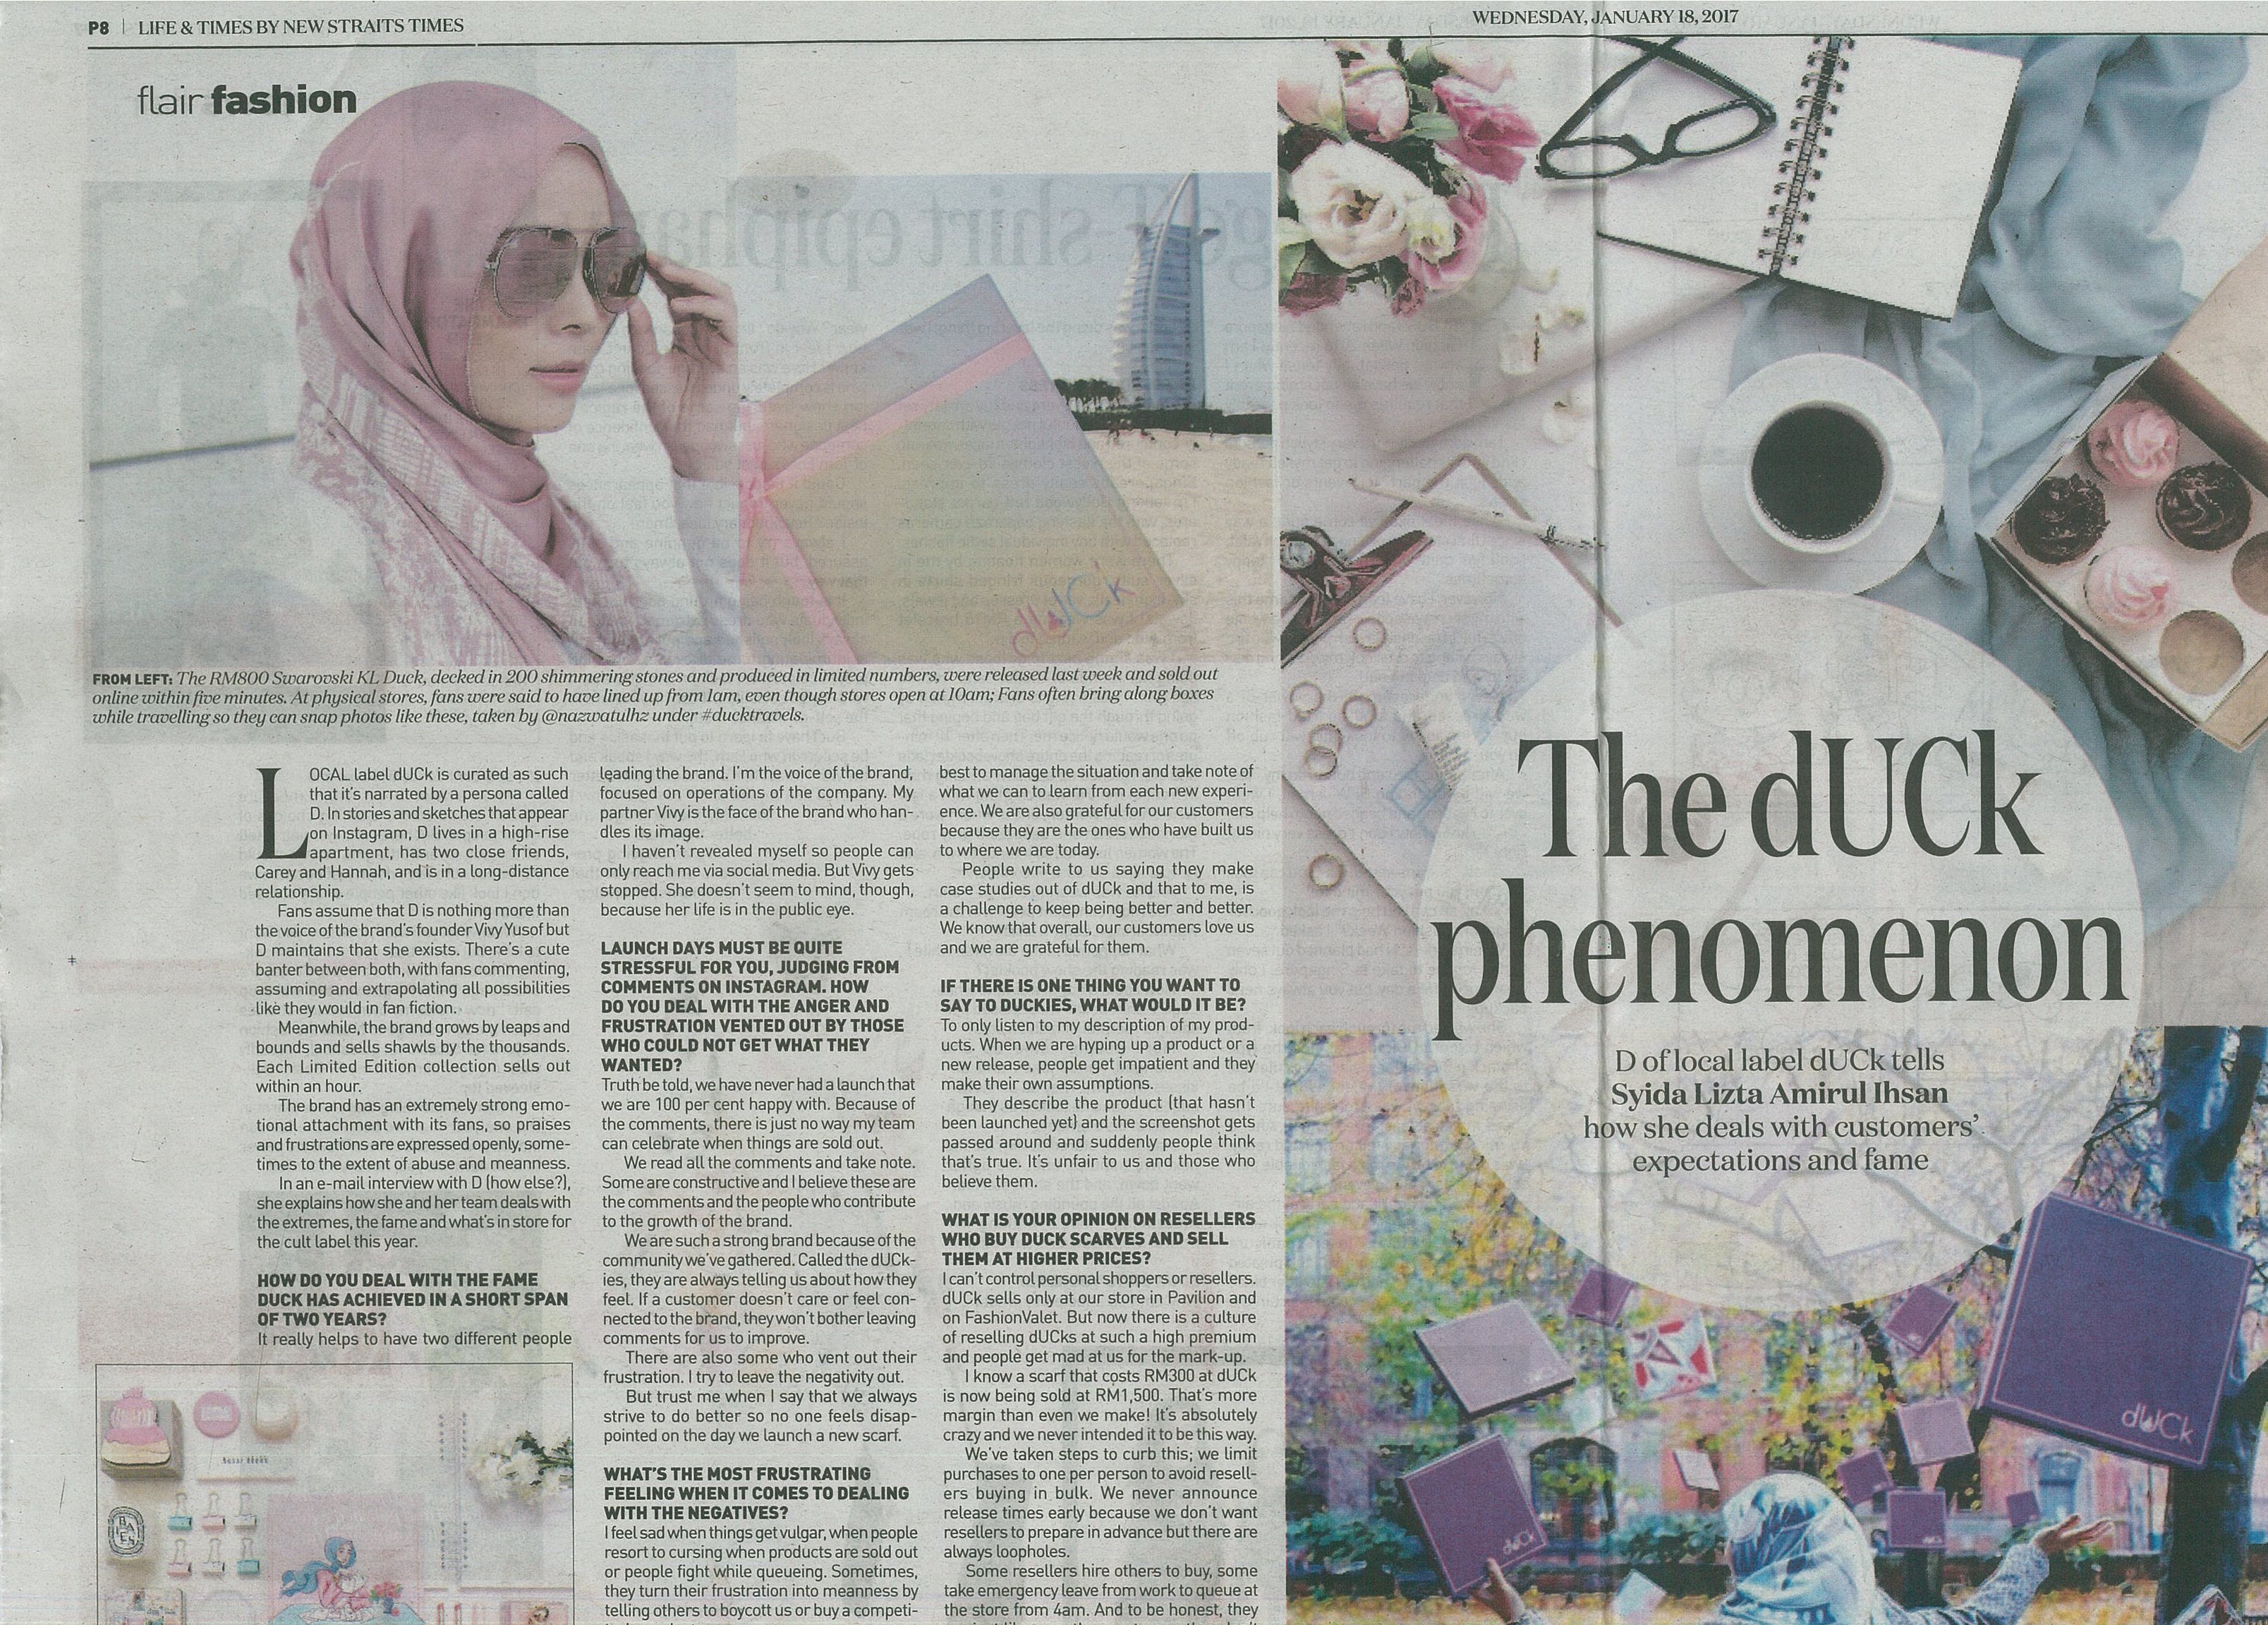 The New Straits Times - January